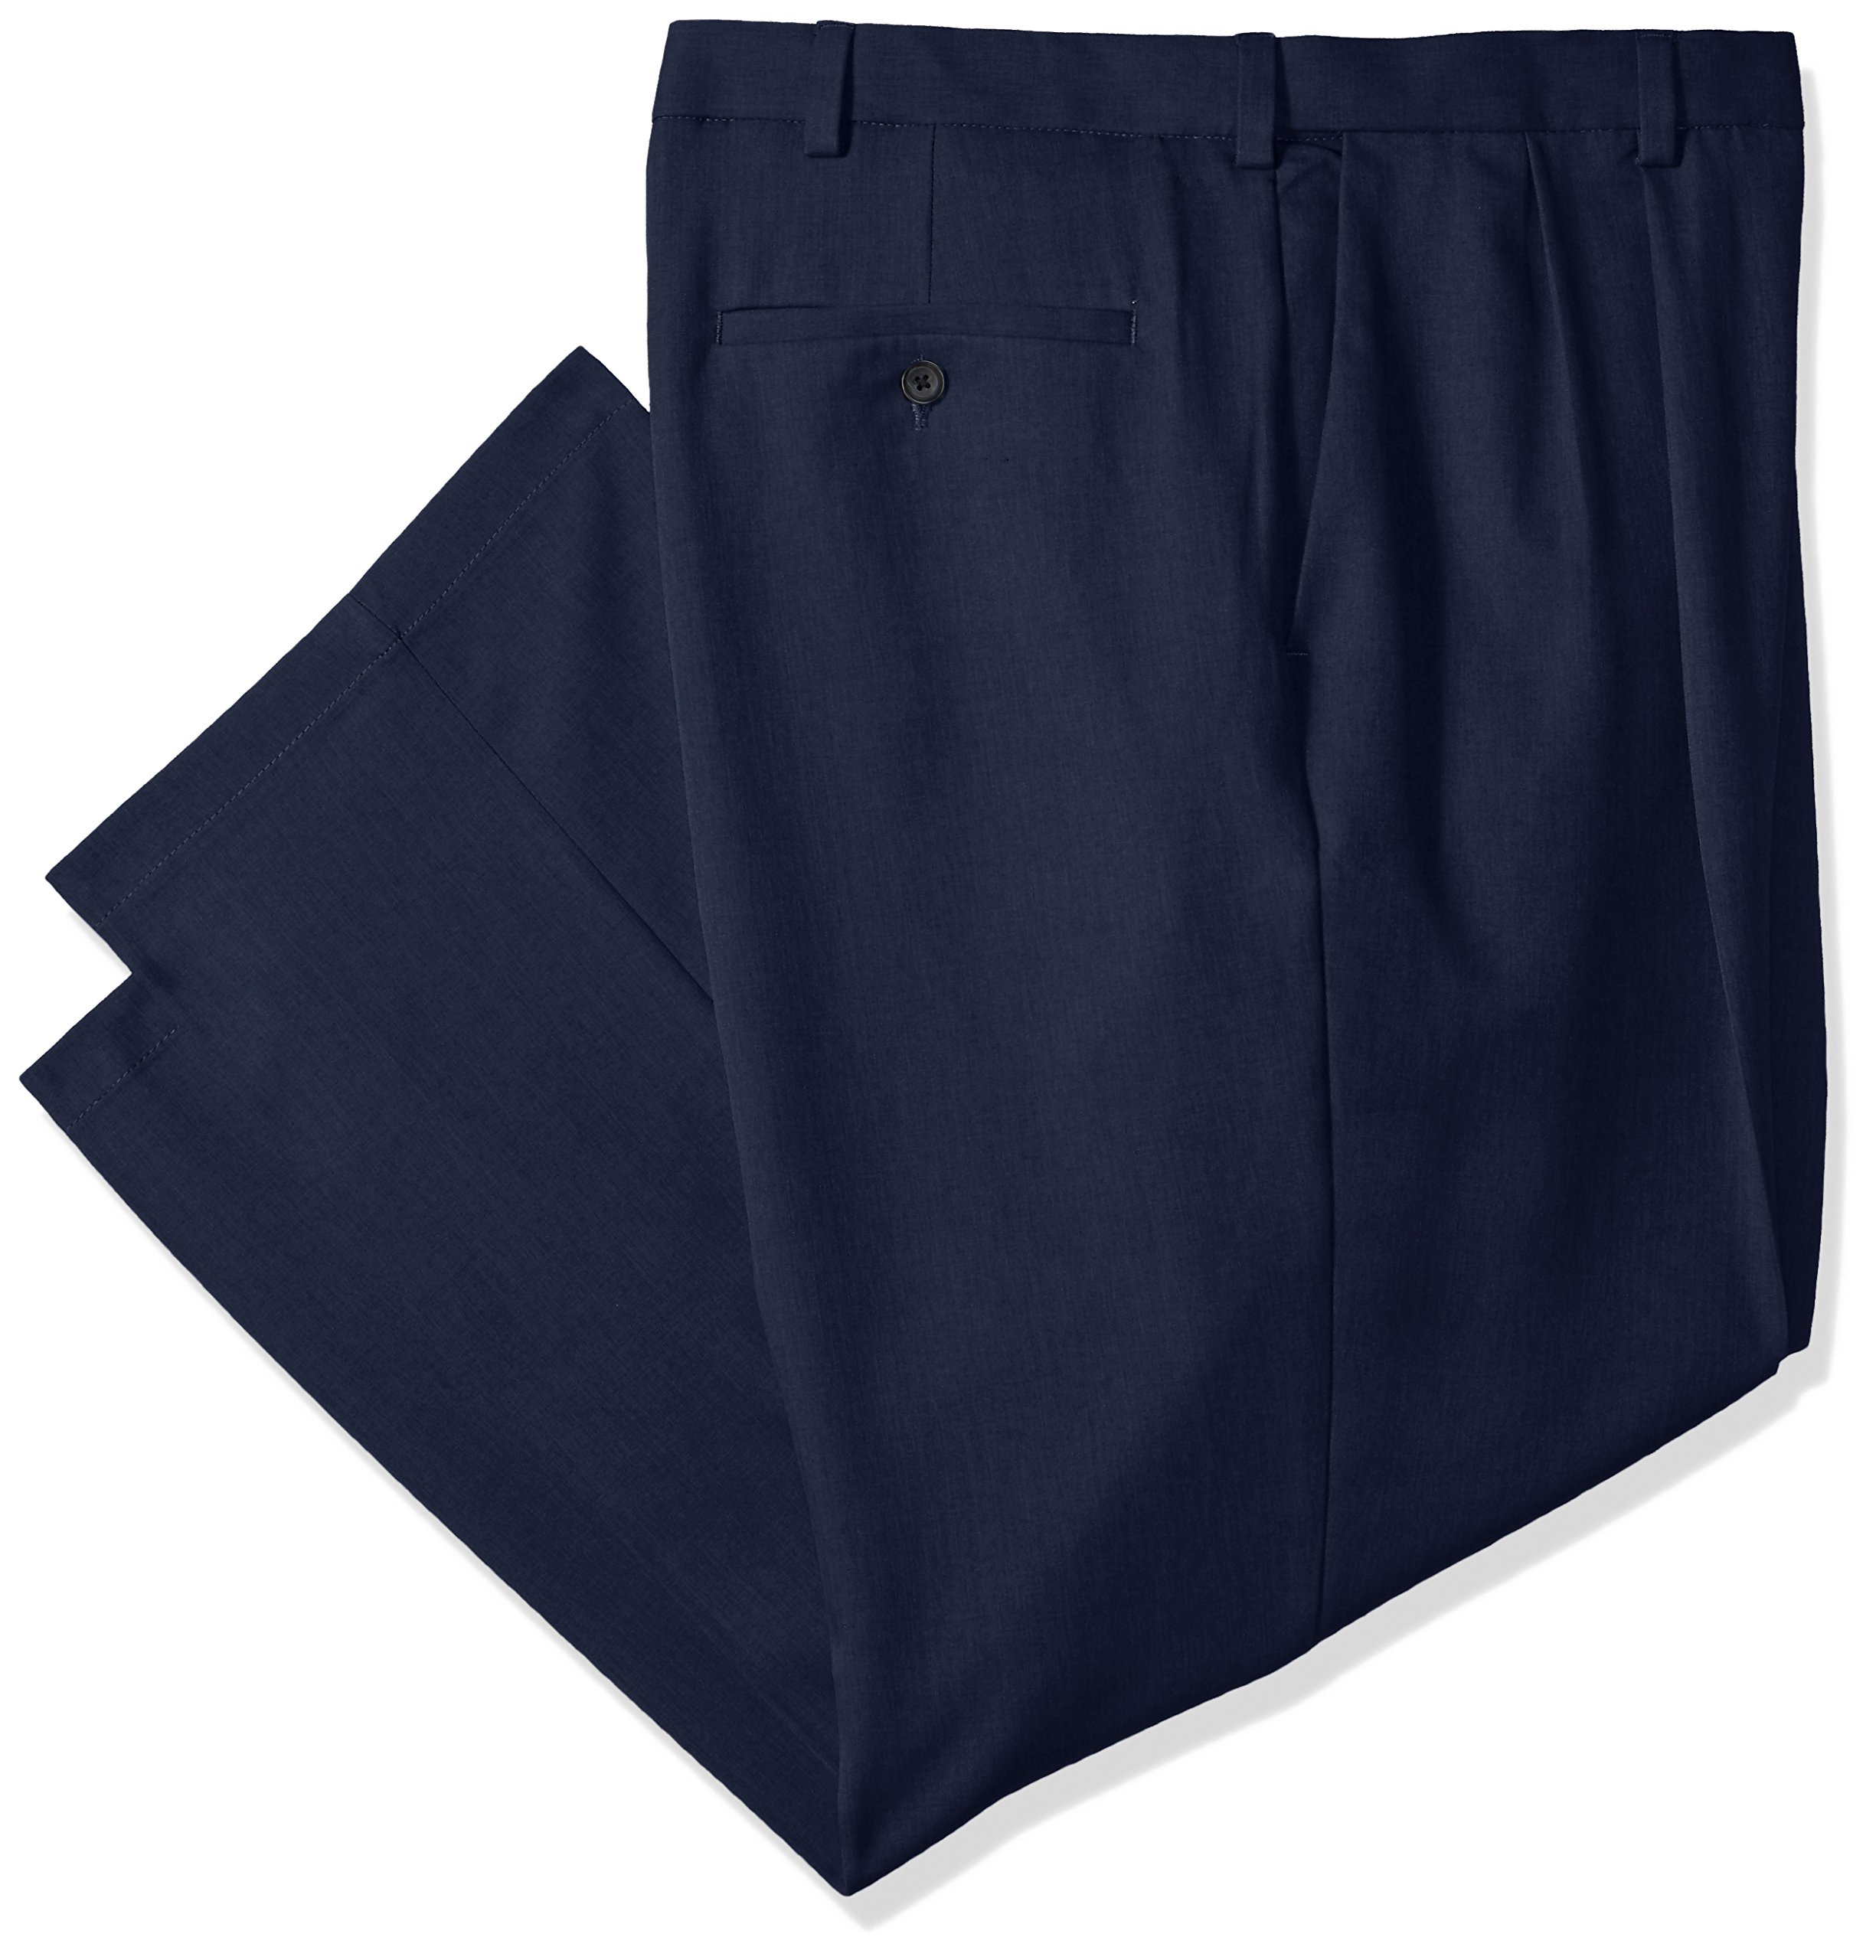 Haggar Men's Cool 18 Pro Classic Fit Pleat Front Expandable Waist Pant, Navy, 50Wx34L